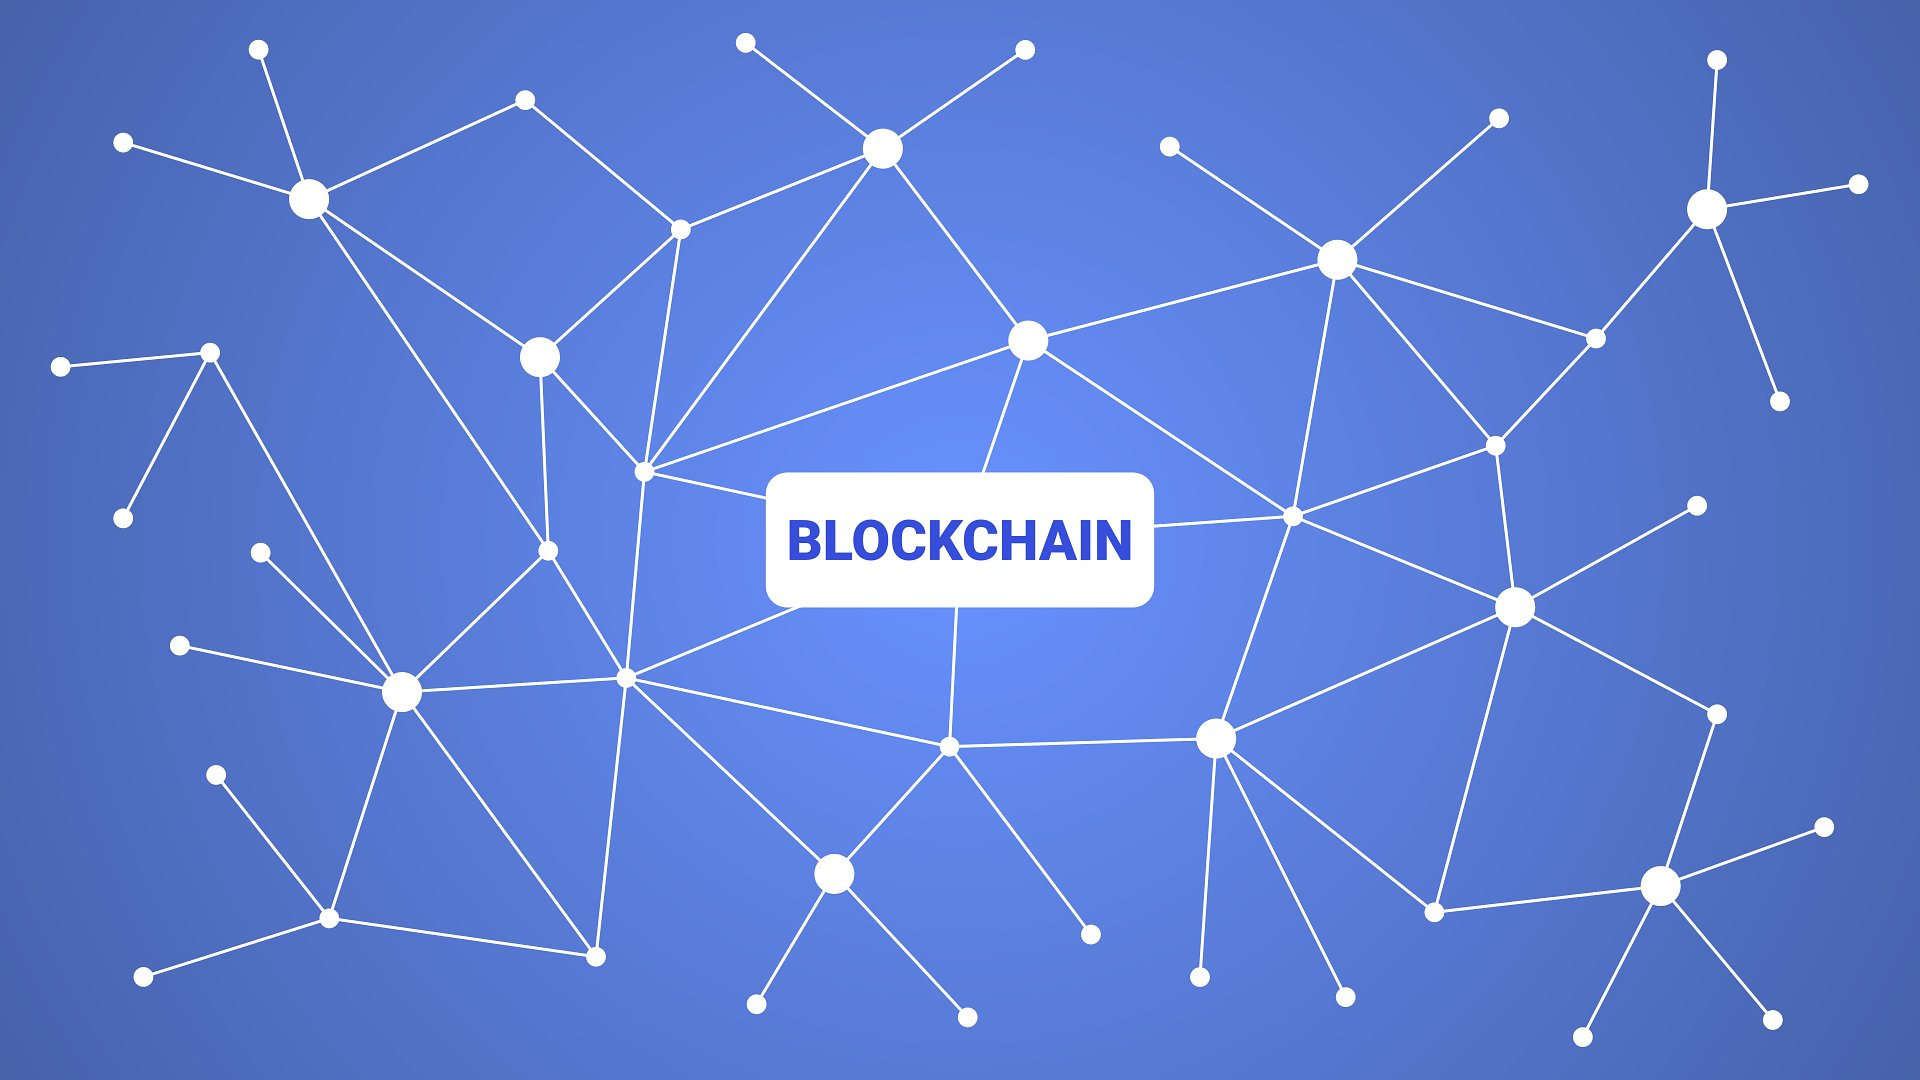 What to Know About Blockchain